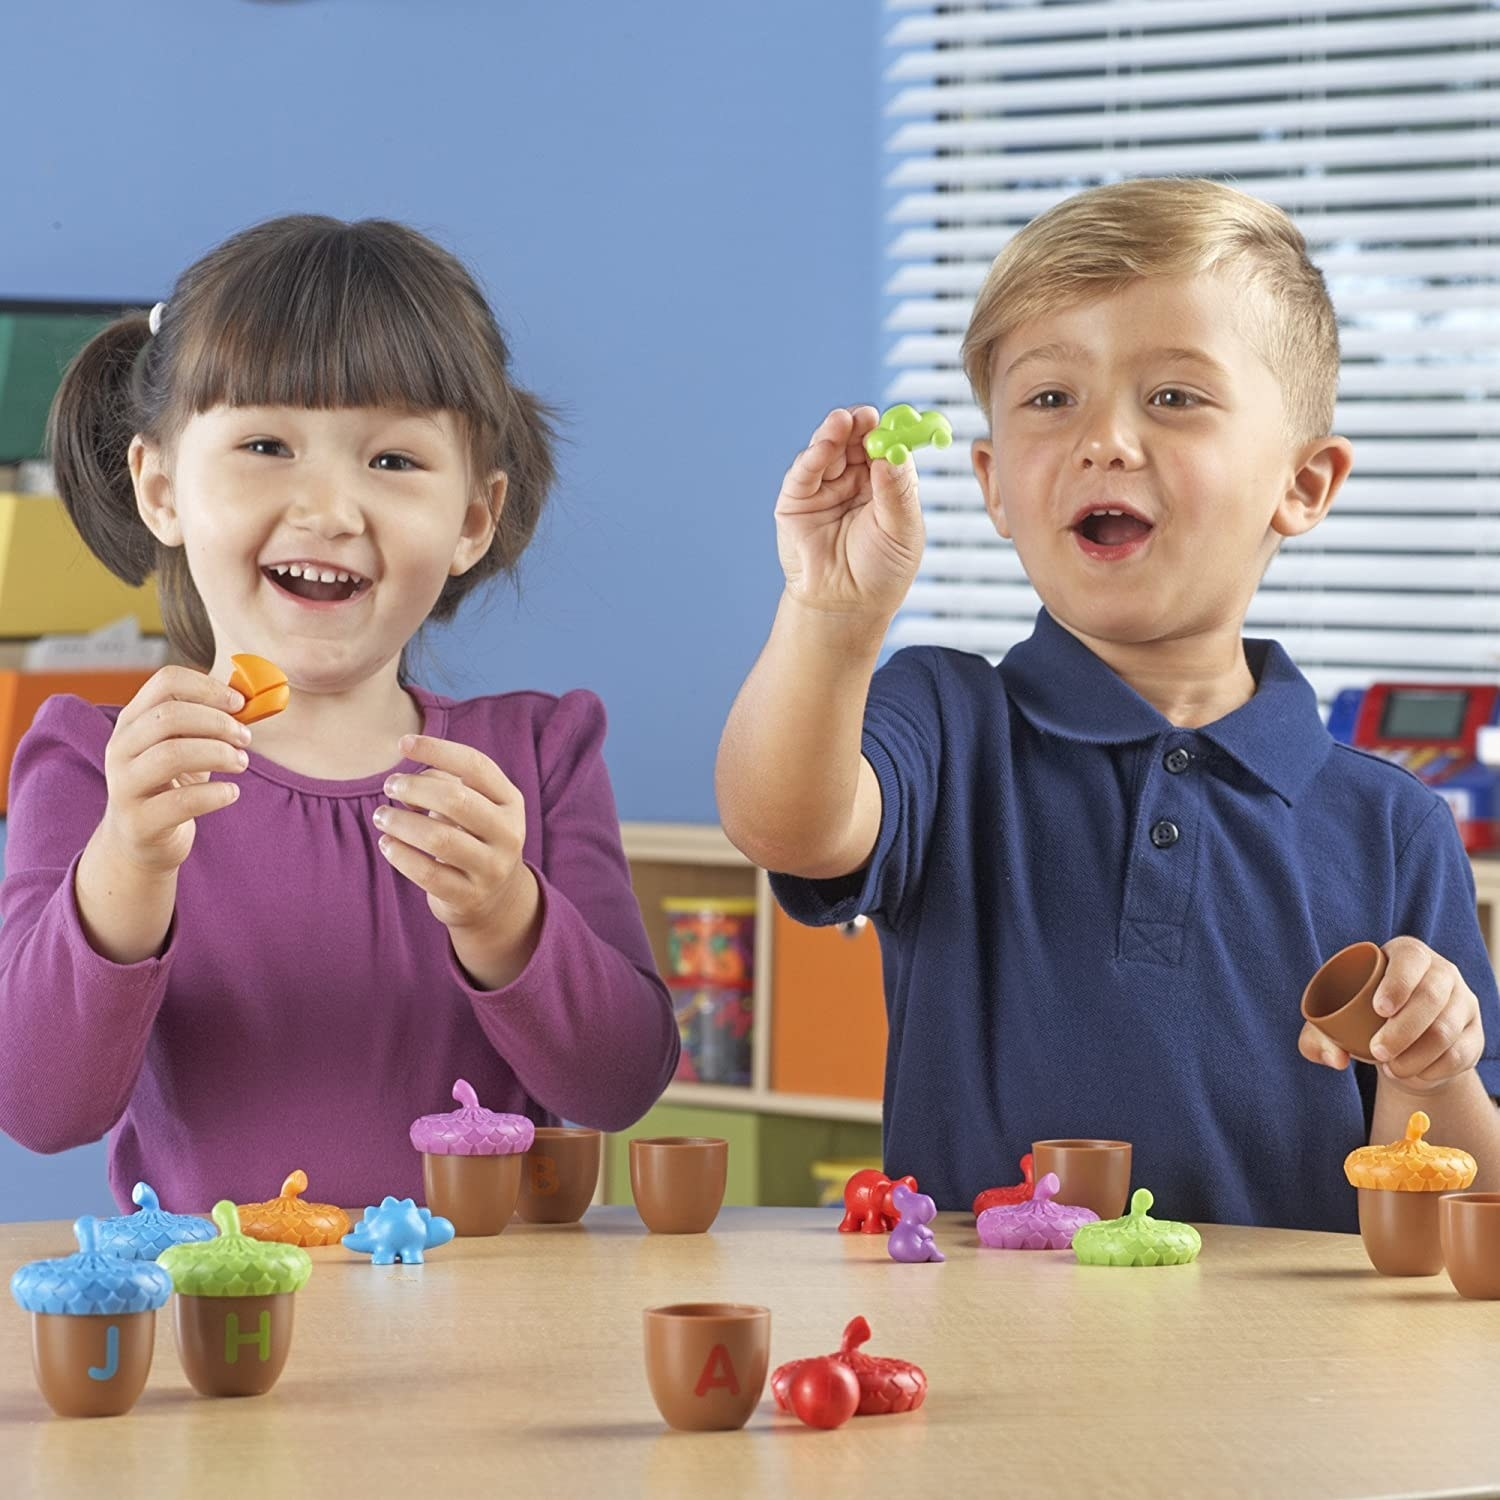 Two child models play with brown plastic acorn toys with colorful tops